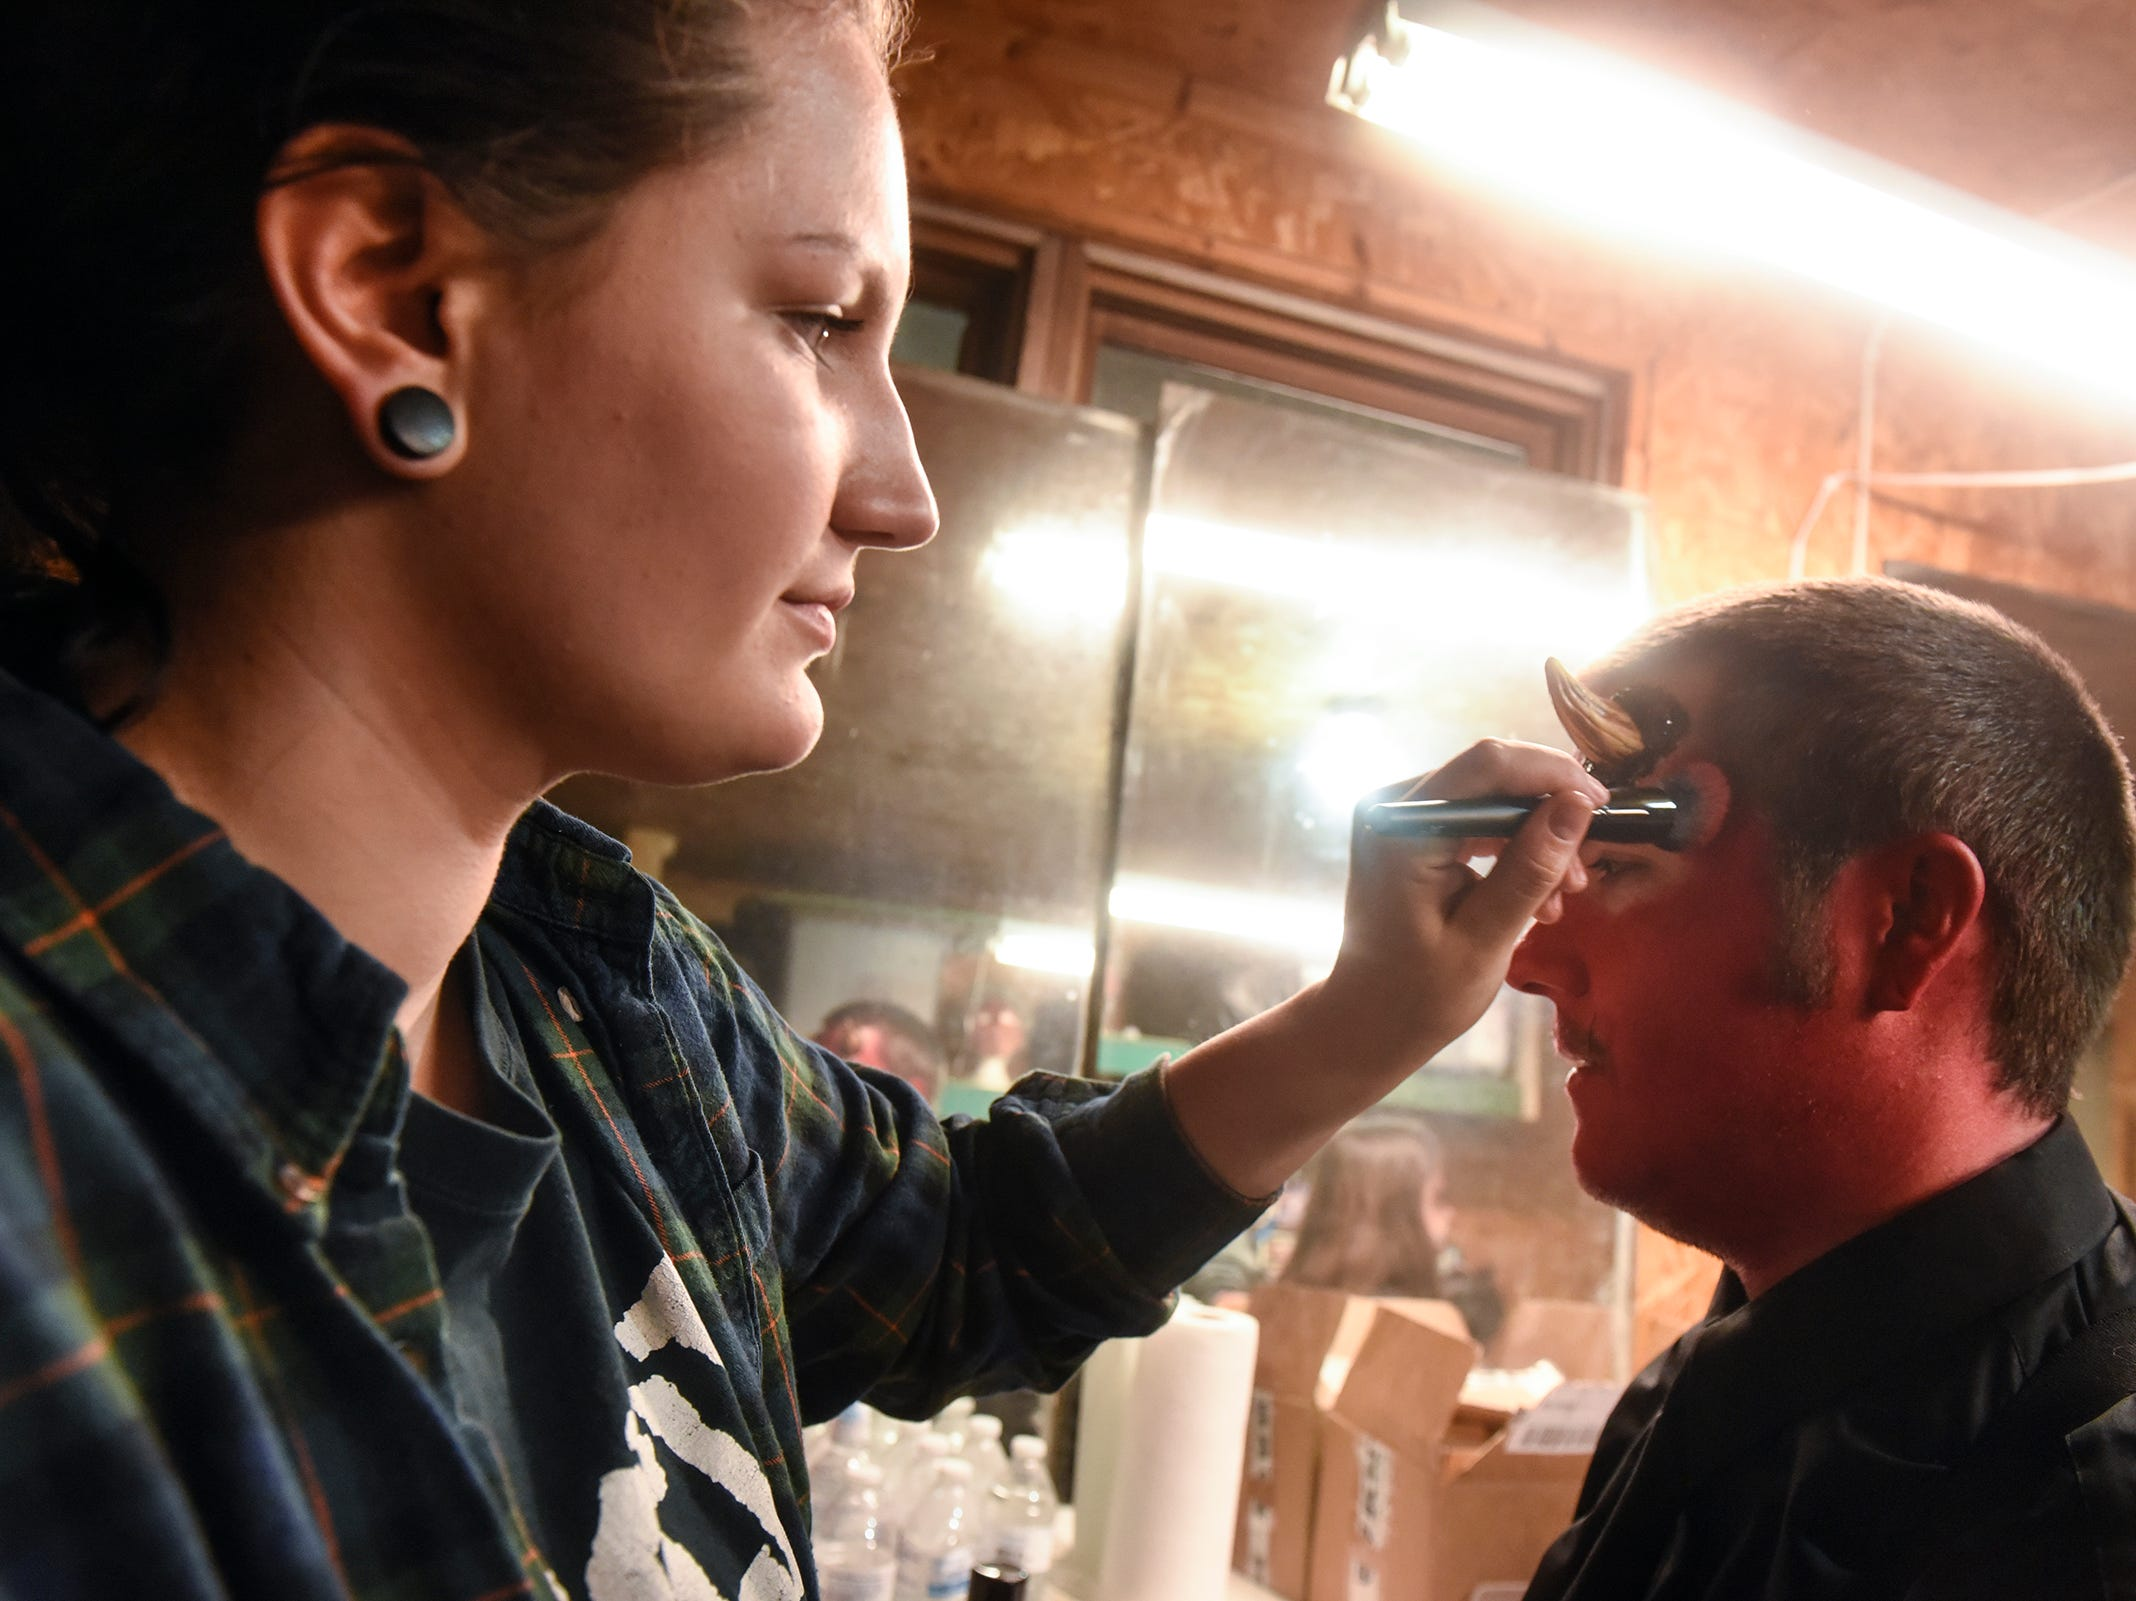 Taylor Froelich applies makeup to Treci King, who performs the part of Satan, Thursday, Oct. 18, at Molitor's Haunted Acres in Sauk Rapids.